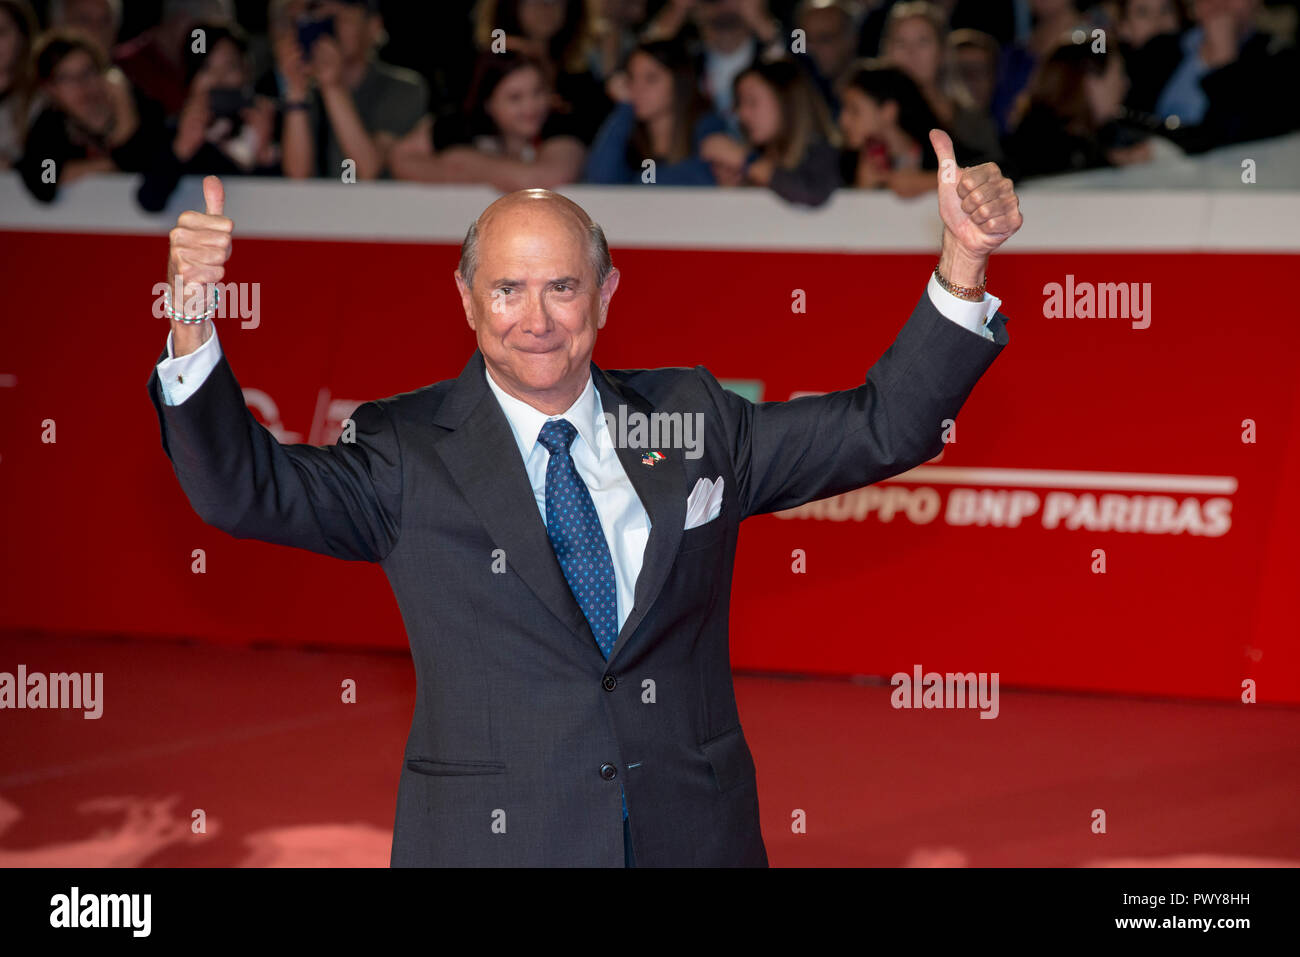 Rome, Italy. 18th October, 2018. The United States Ambassador to Italy Lewis M. Eisenberg attending the red carpet during the 13th Rome Film Fest Credit: Silvia Gerbino/Alamy Live News - Stock Image